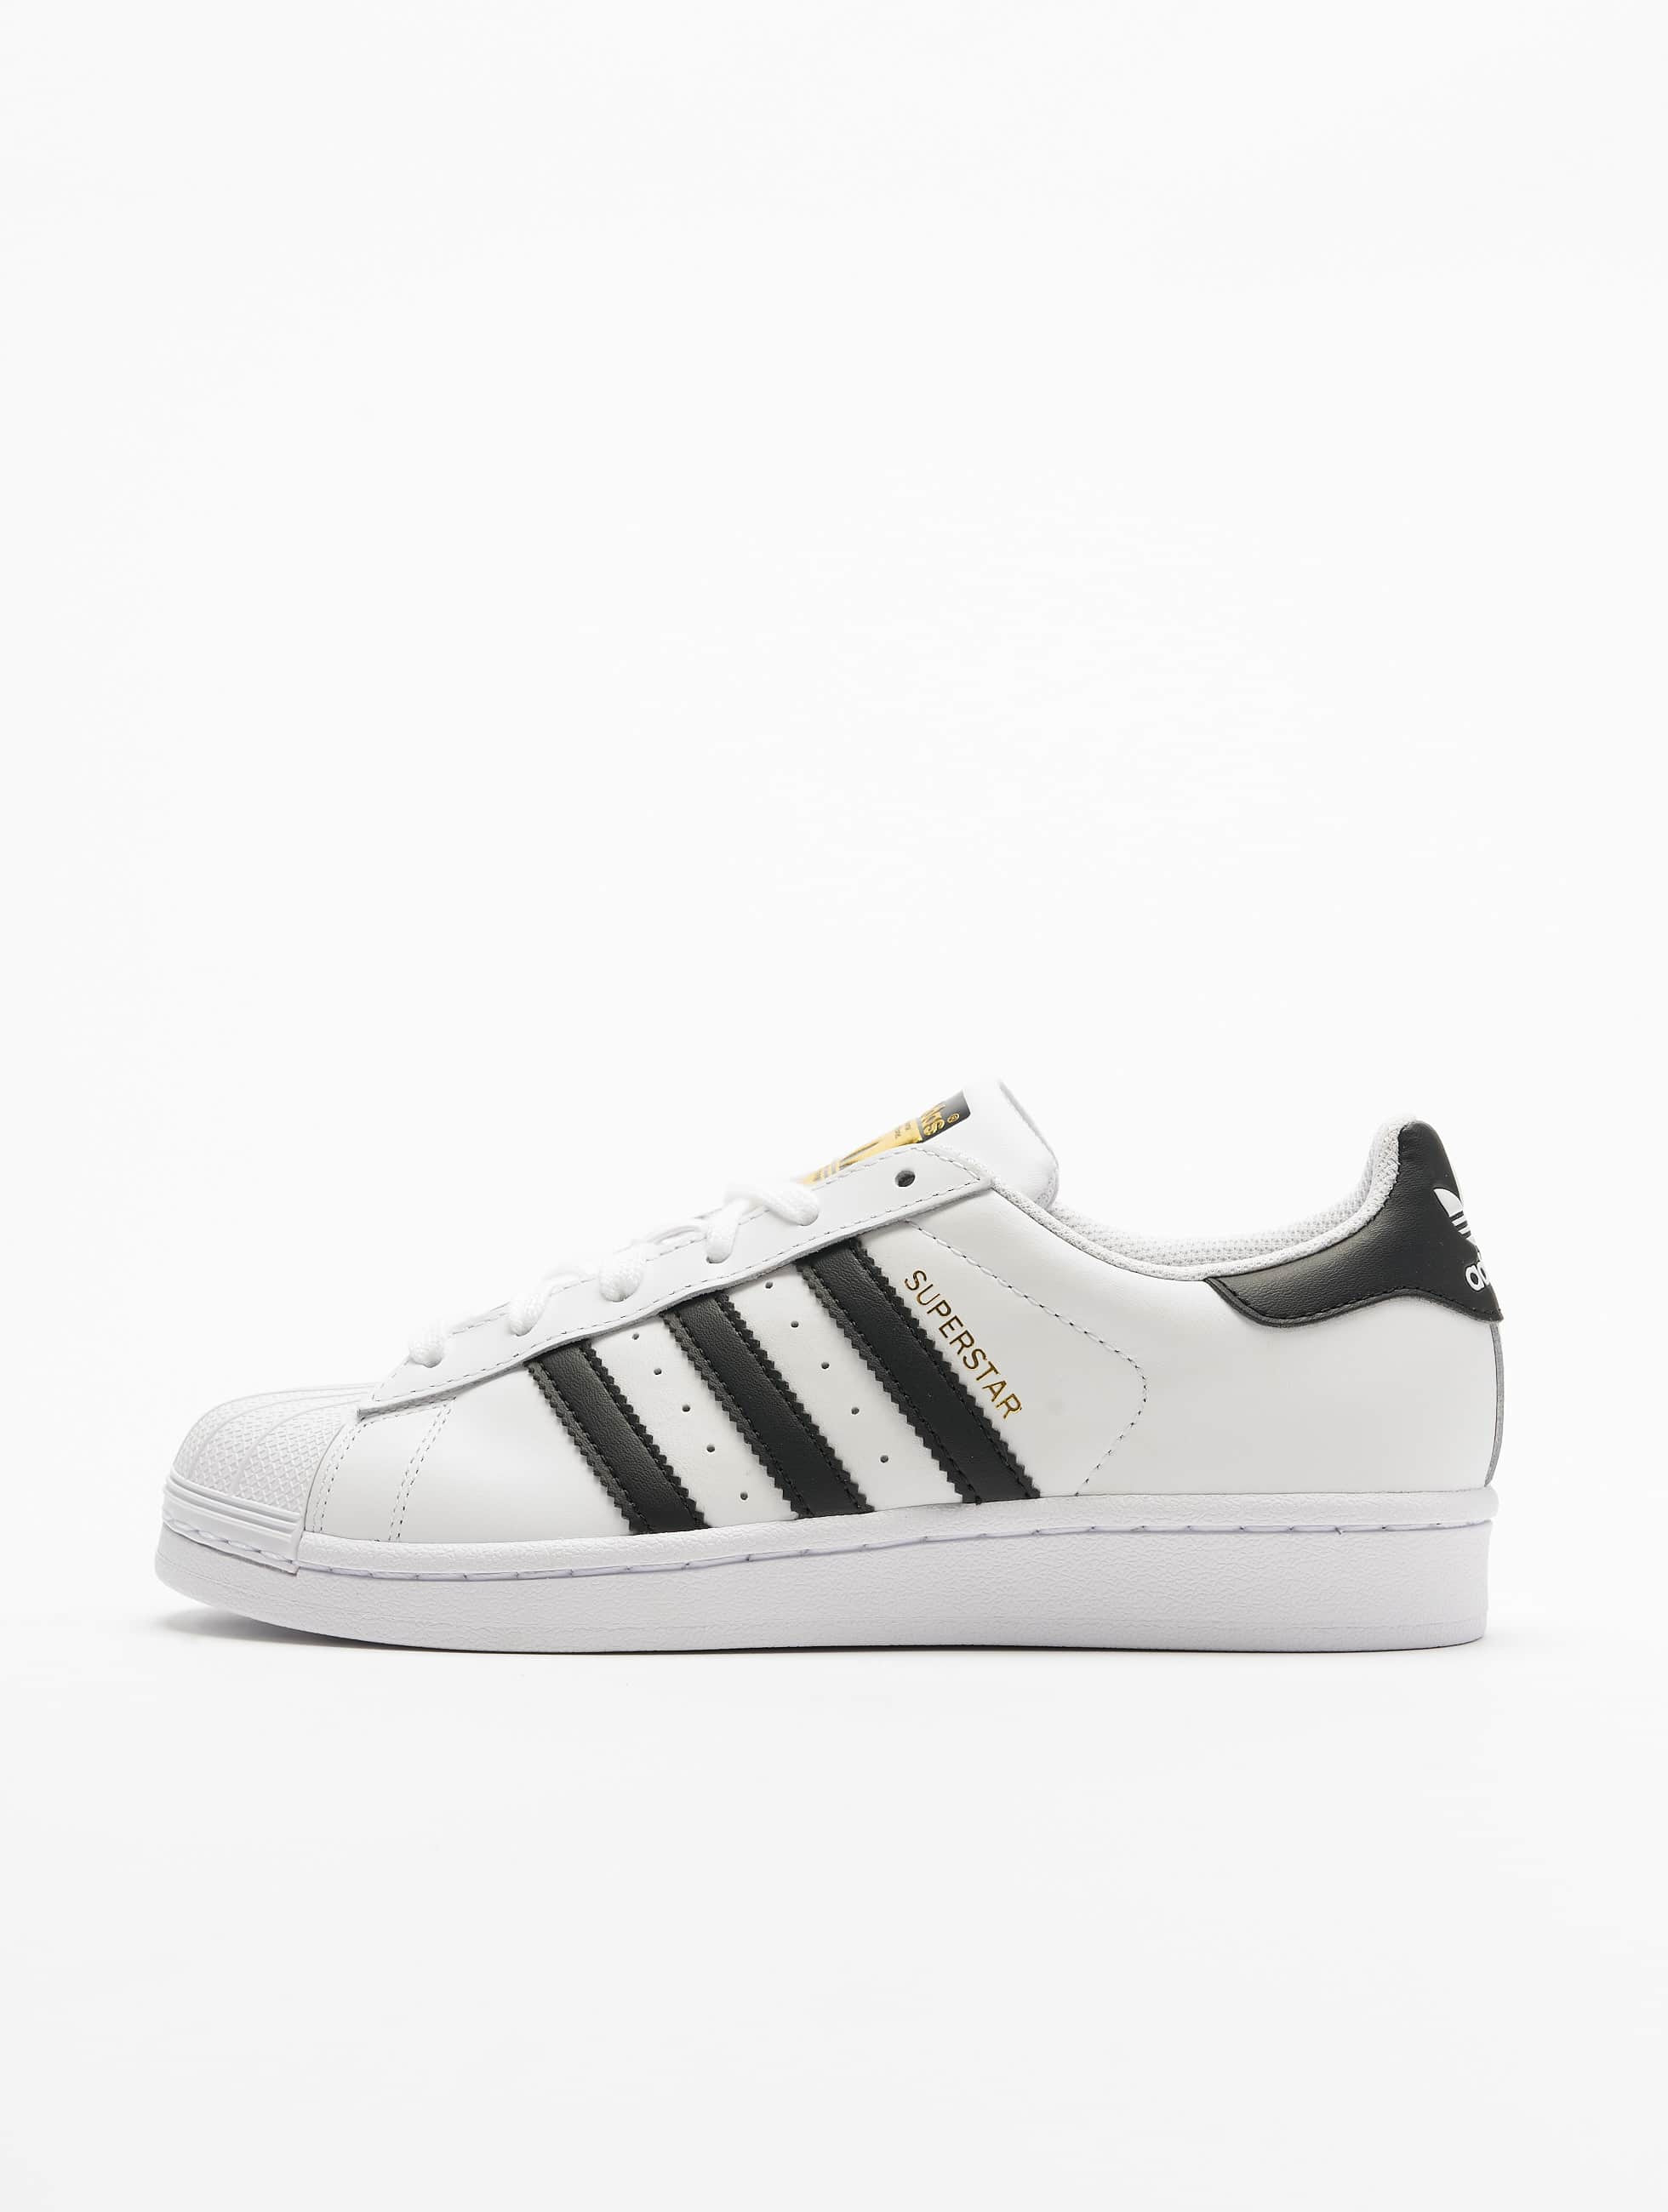 adidas superstar günstig 41